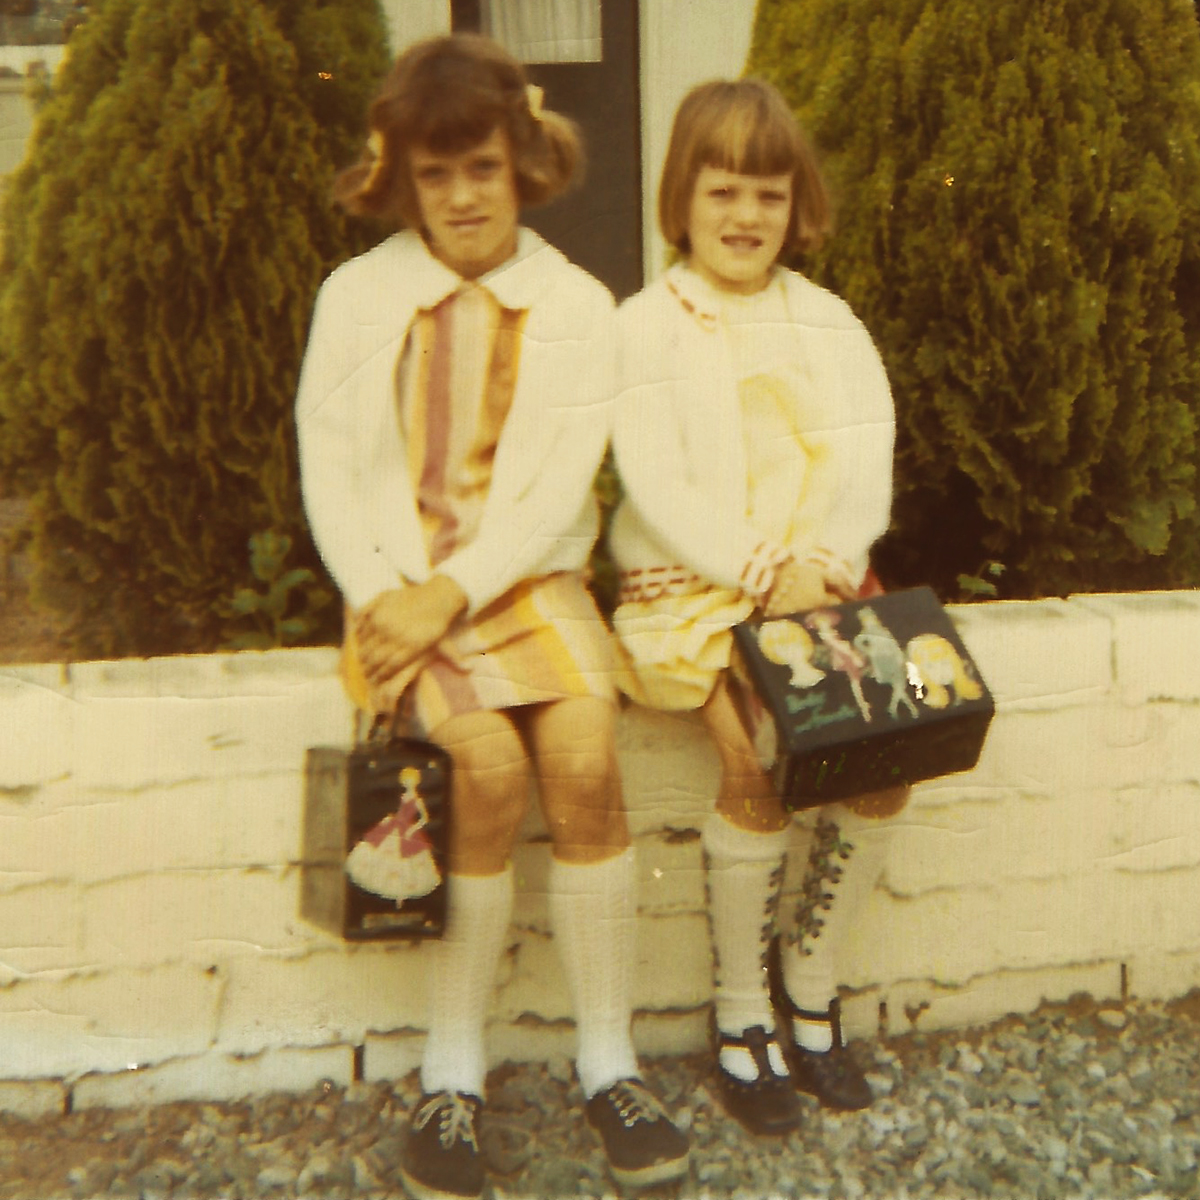 My sister and I with our vinyl-sided lunch boxes; inside the food was wrapped in wax paper